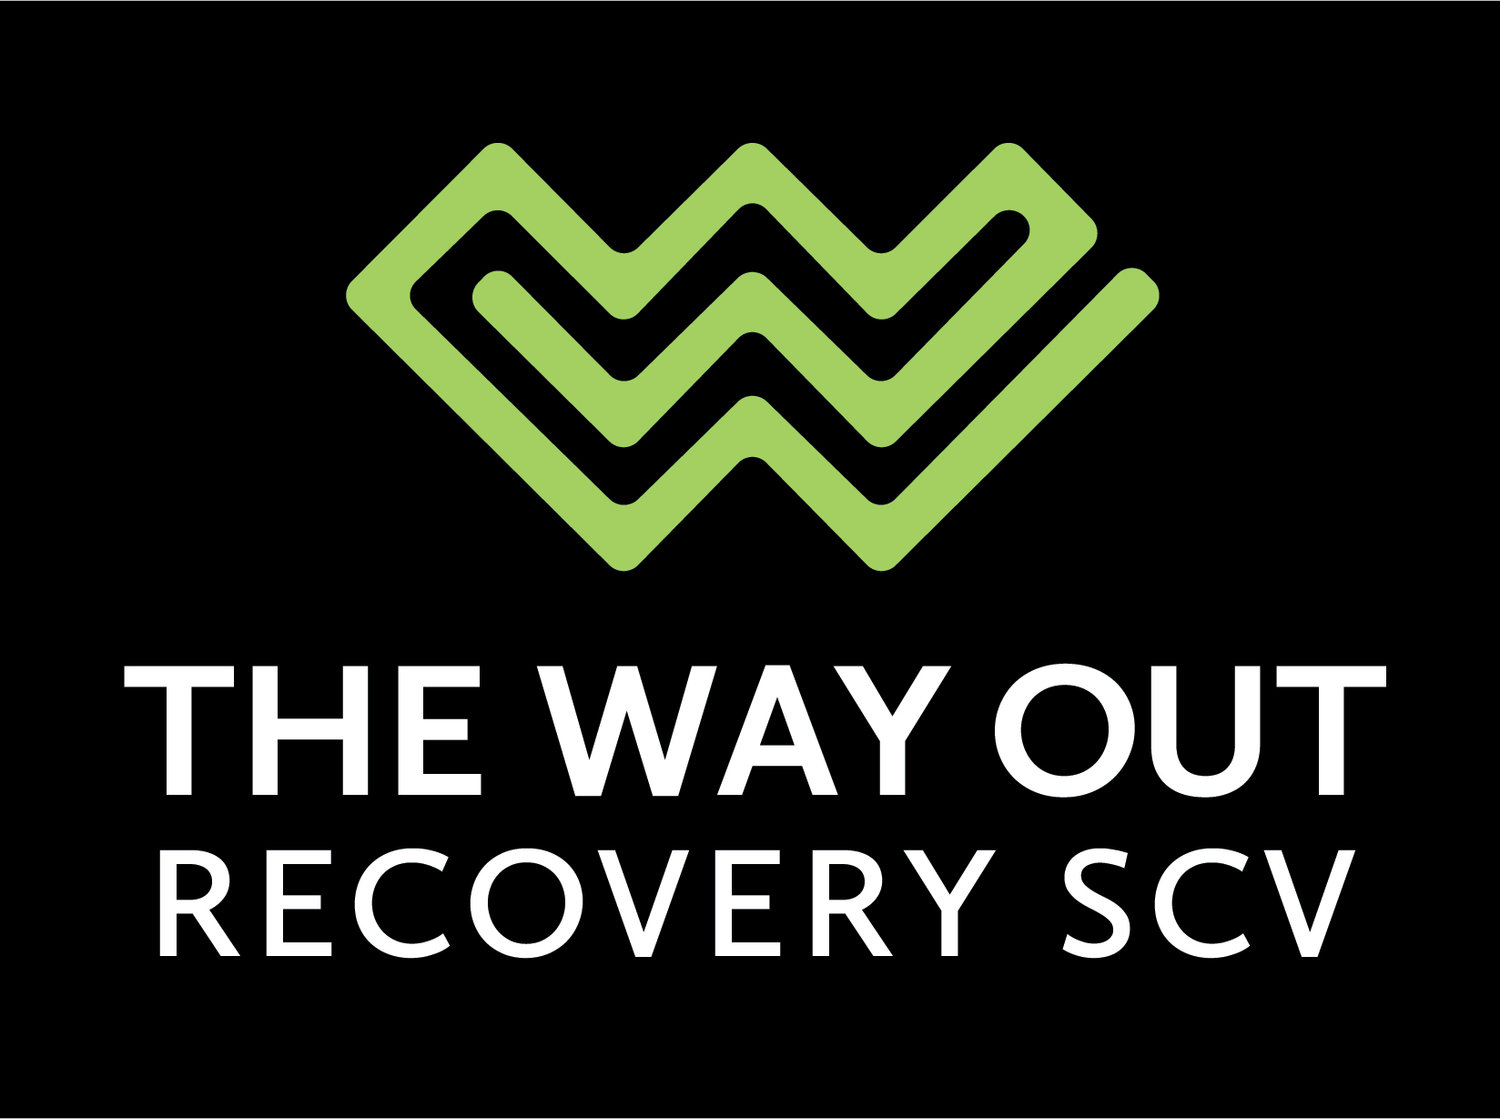 The Way Out Recovery SCV | Drug & Alcohol Outpatient Treatment